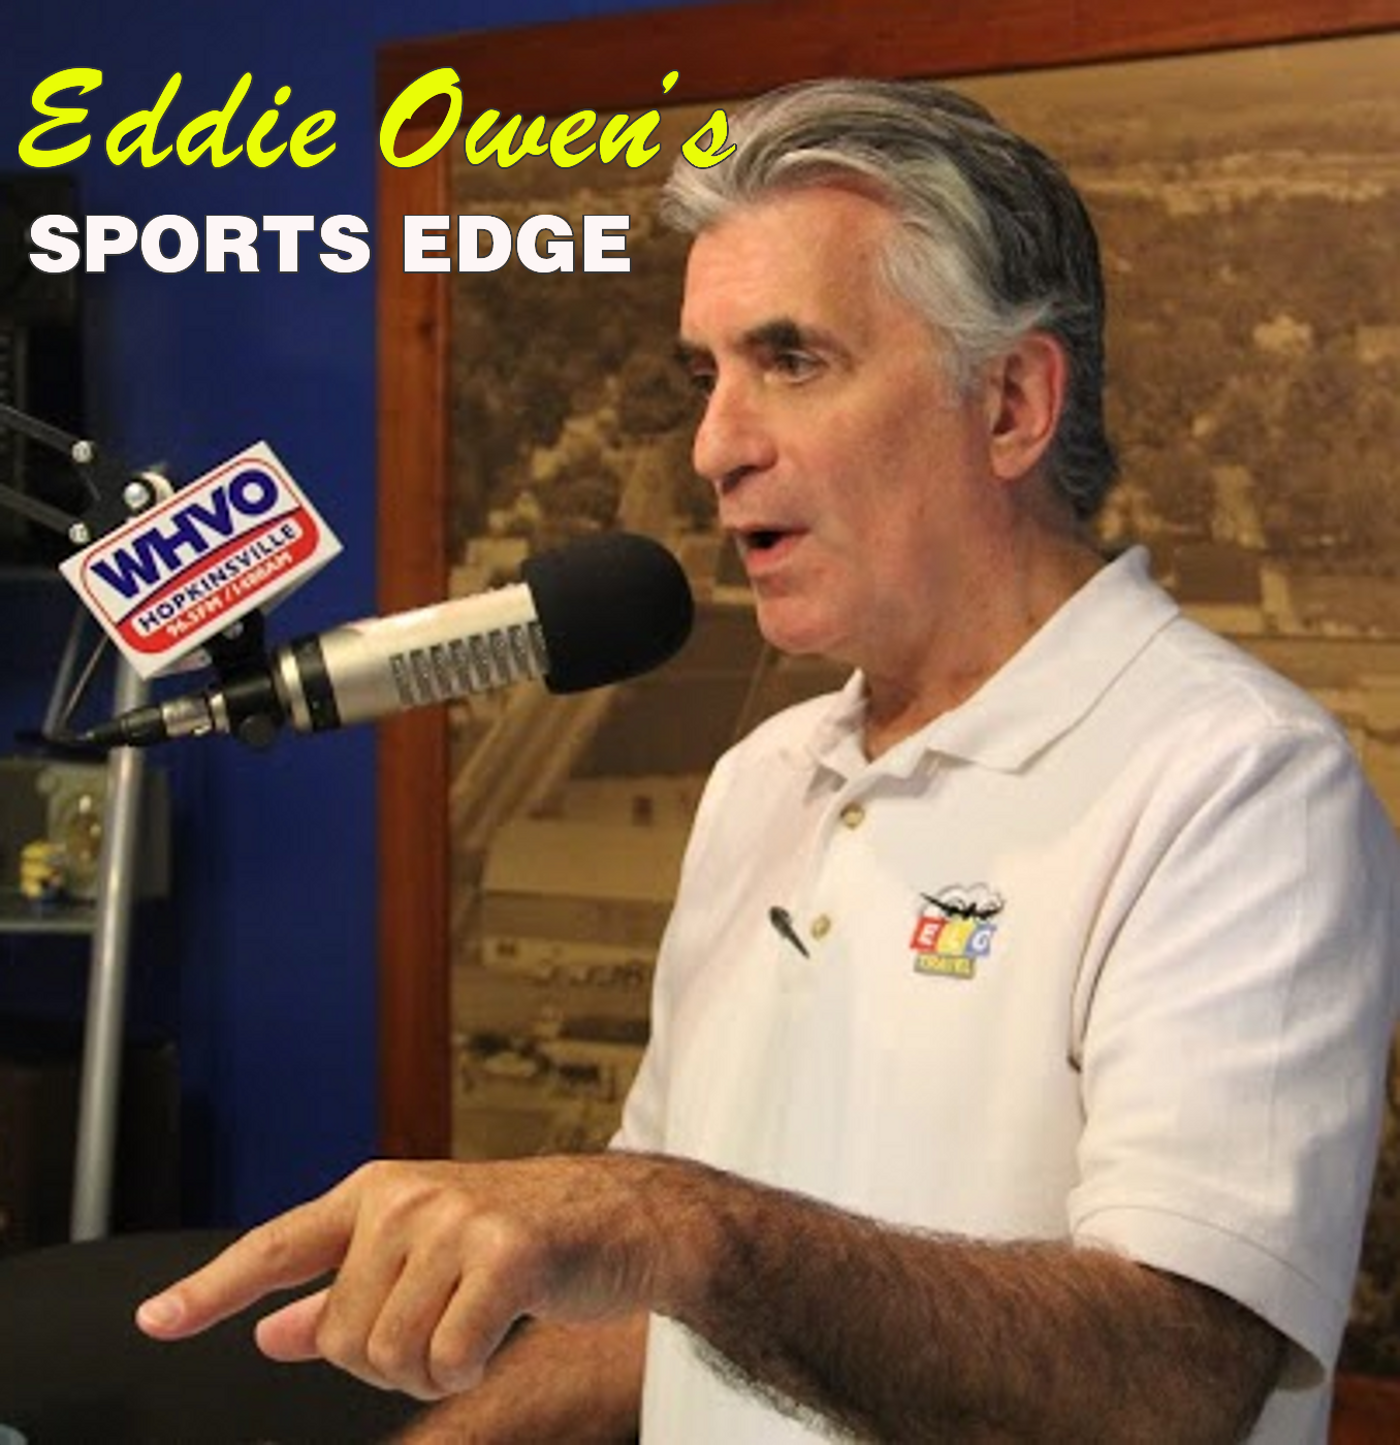 Eddie Owen's SPORTS EDGE